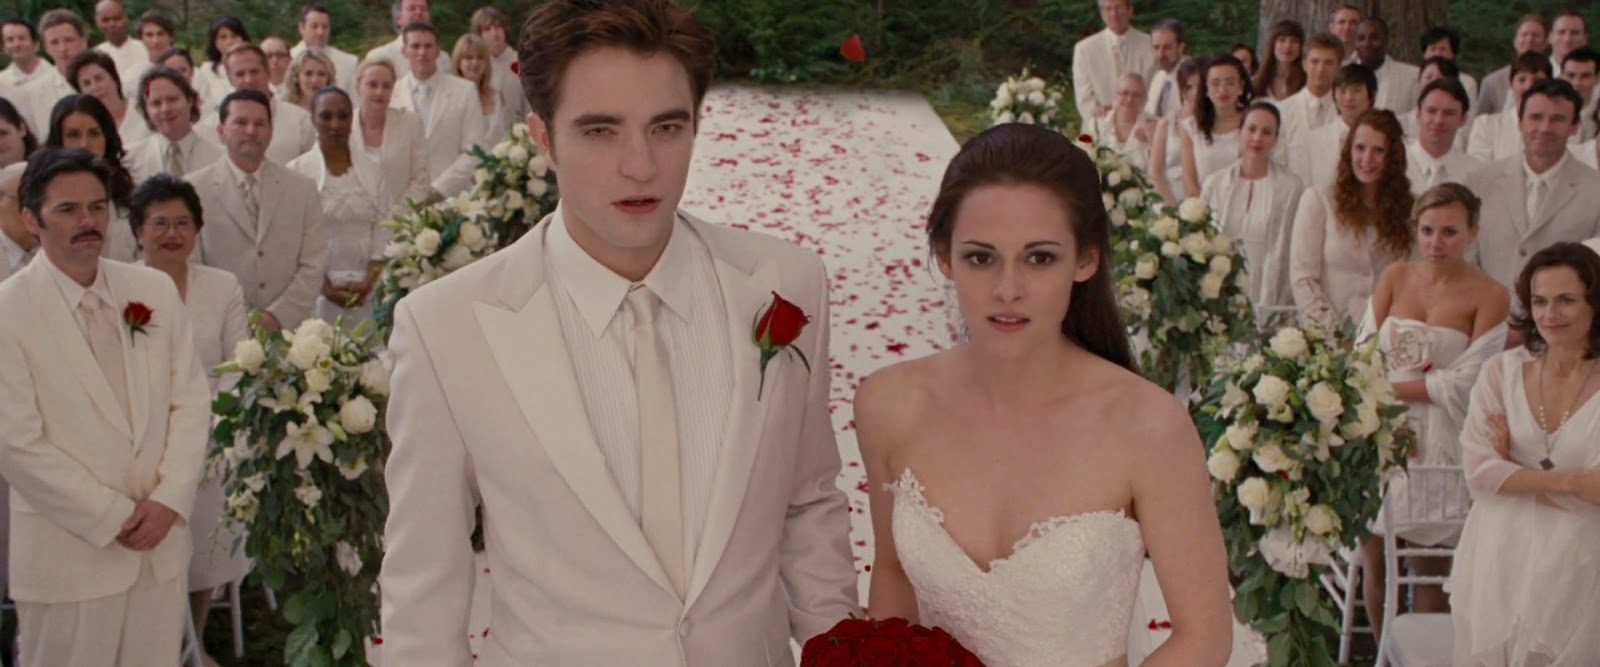 The Twilight Saga - Breaking Dawn Part 1 (2011) S2 s The Twilight Saga - Breaking Dawn Part 1 (2011)